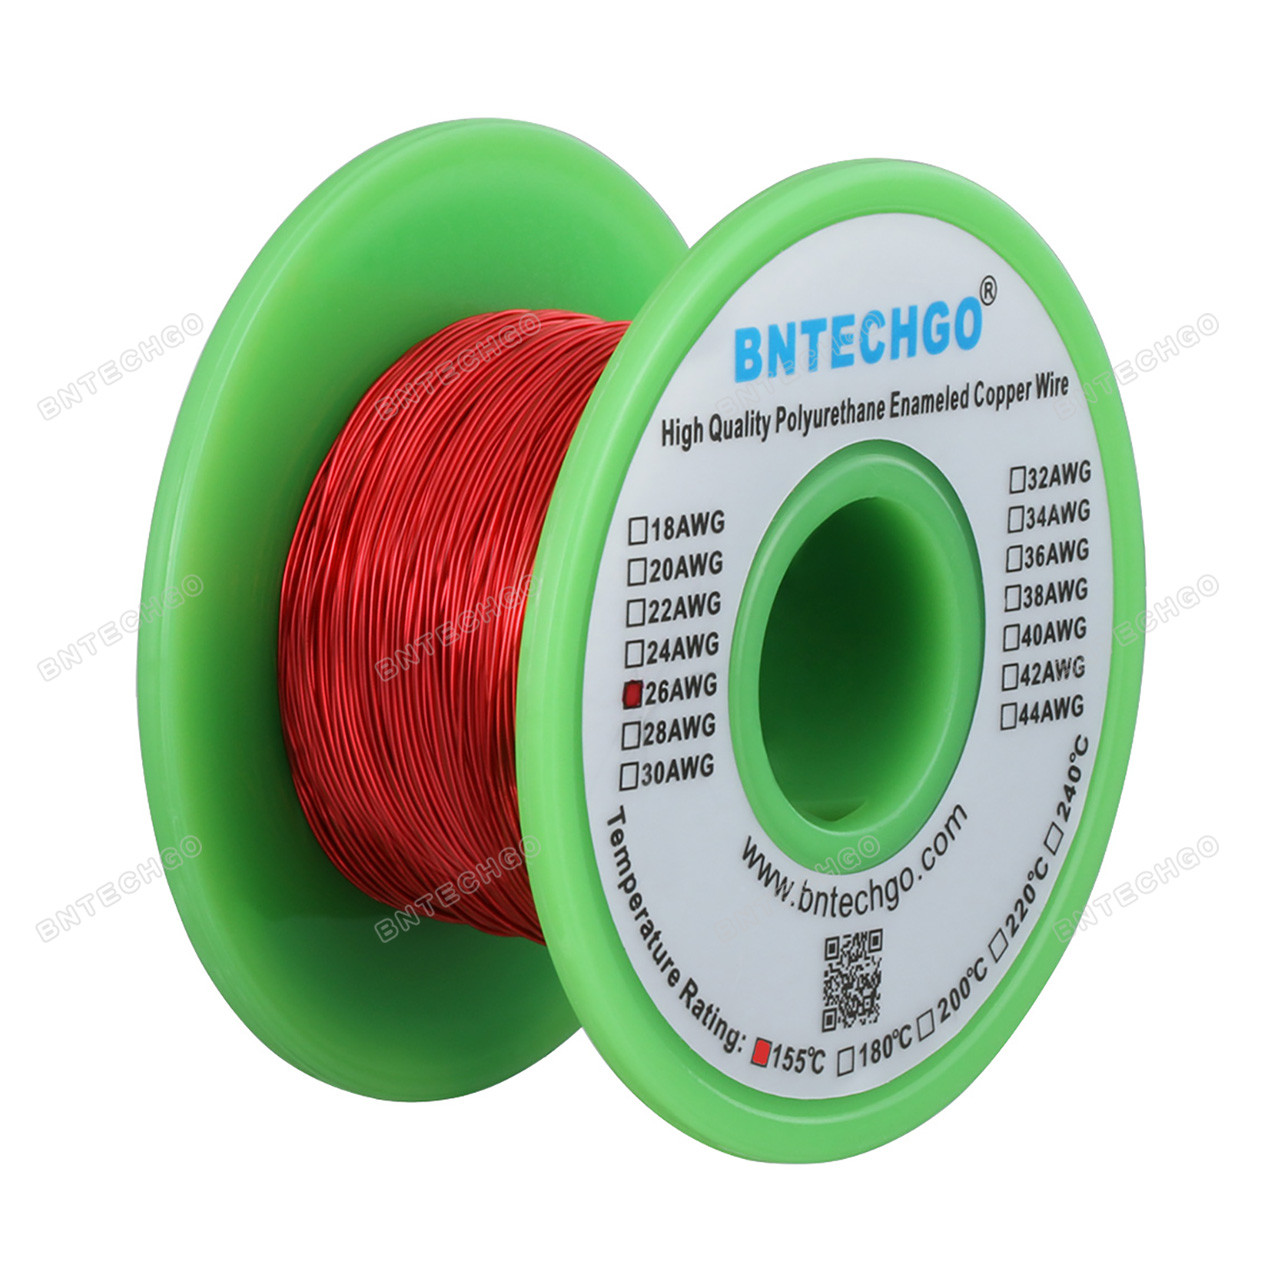 4 oz BNTECHGO 34 AWG Magnet Wire Enameled Copper Wire Enameled Magnet Winding Wire 0.0063 Diameter 1 Spool Coil Red Temperature Rating 155℃ Widely Used for Transformers Inductors